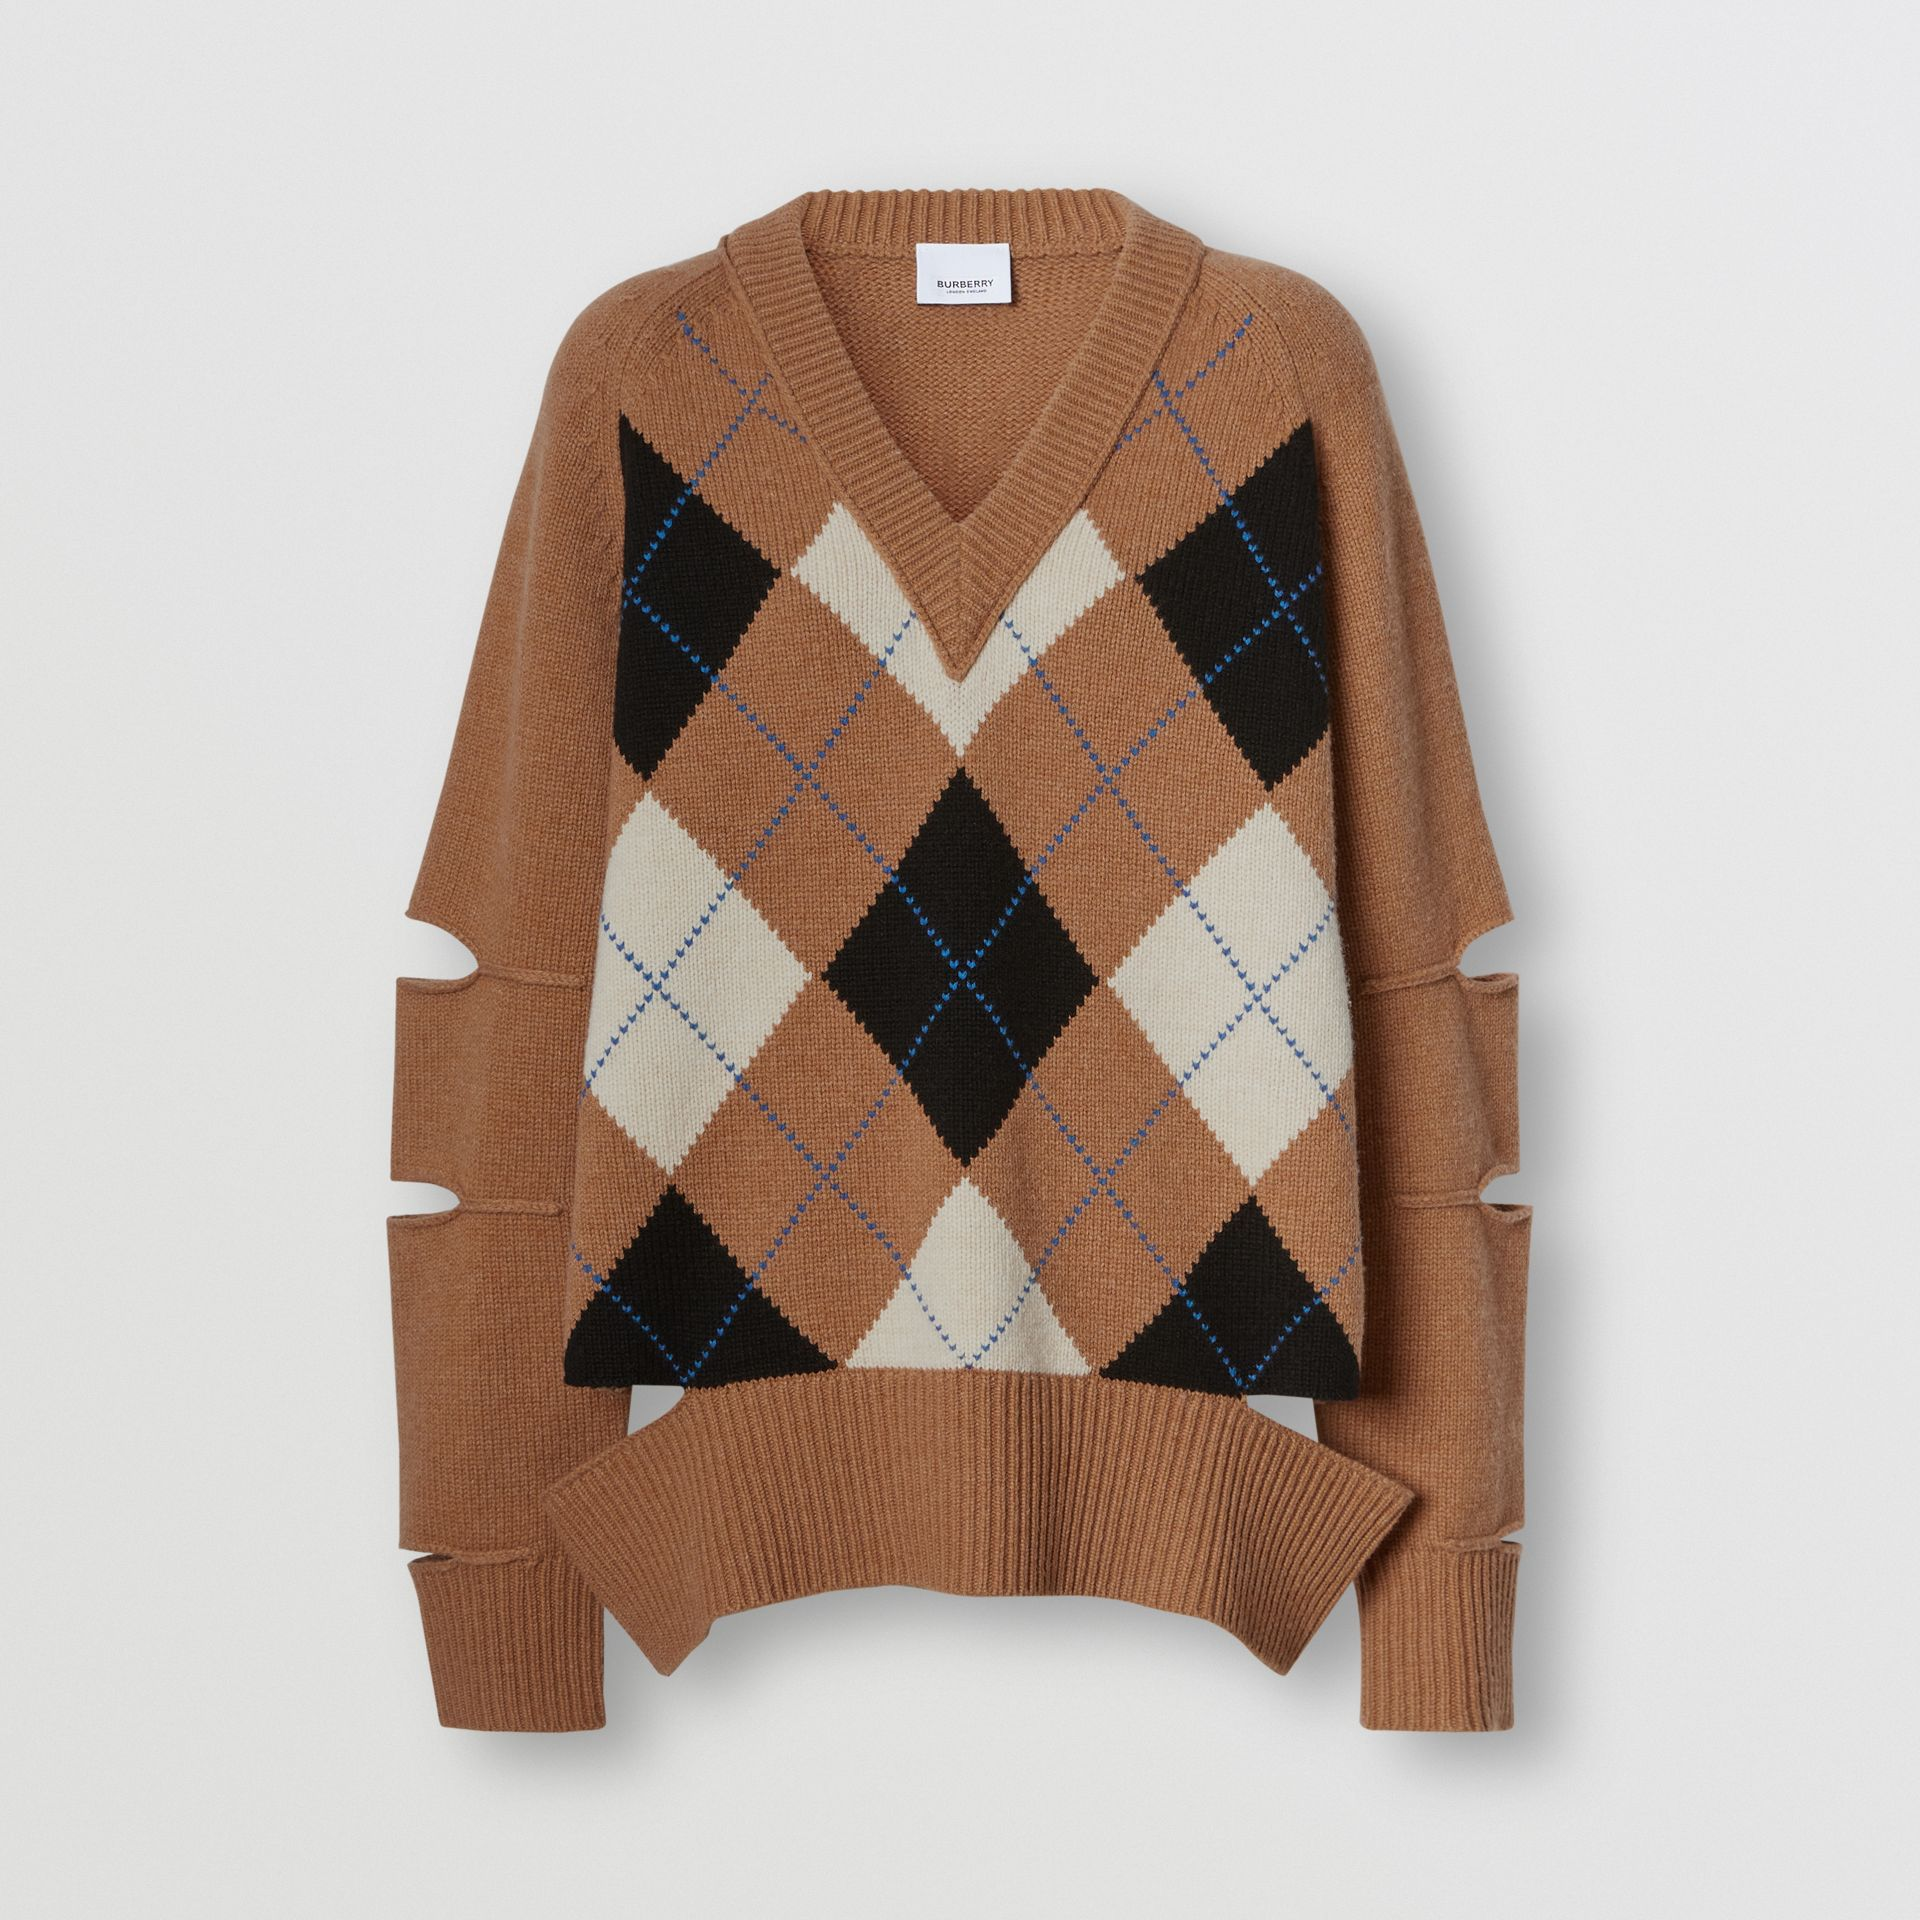 Cut-out Detail Argyle Intarsia Wool Cashmere Sweater in Camel - Women | Burberry - gallery image 3